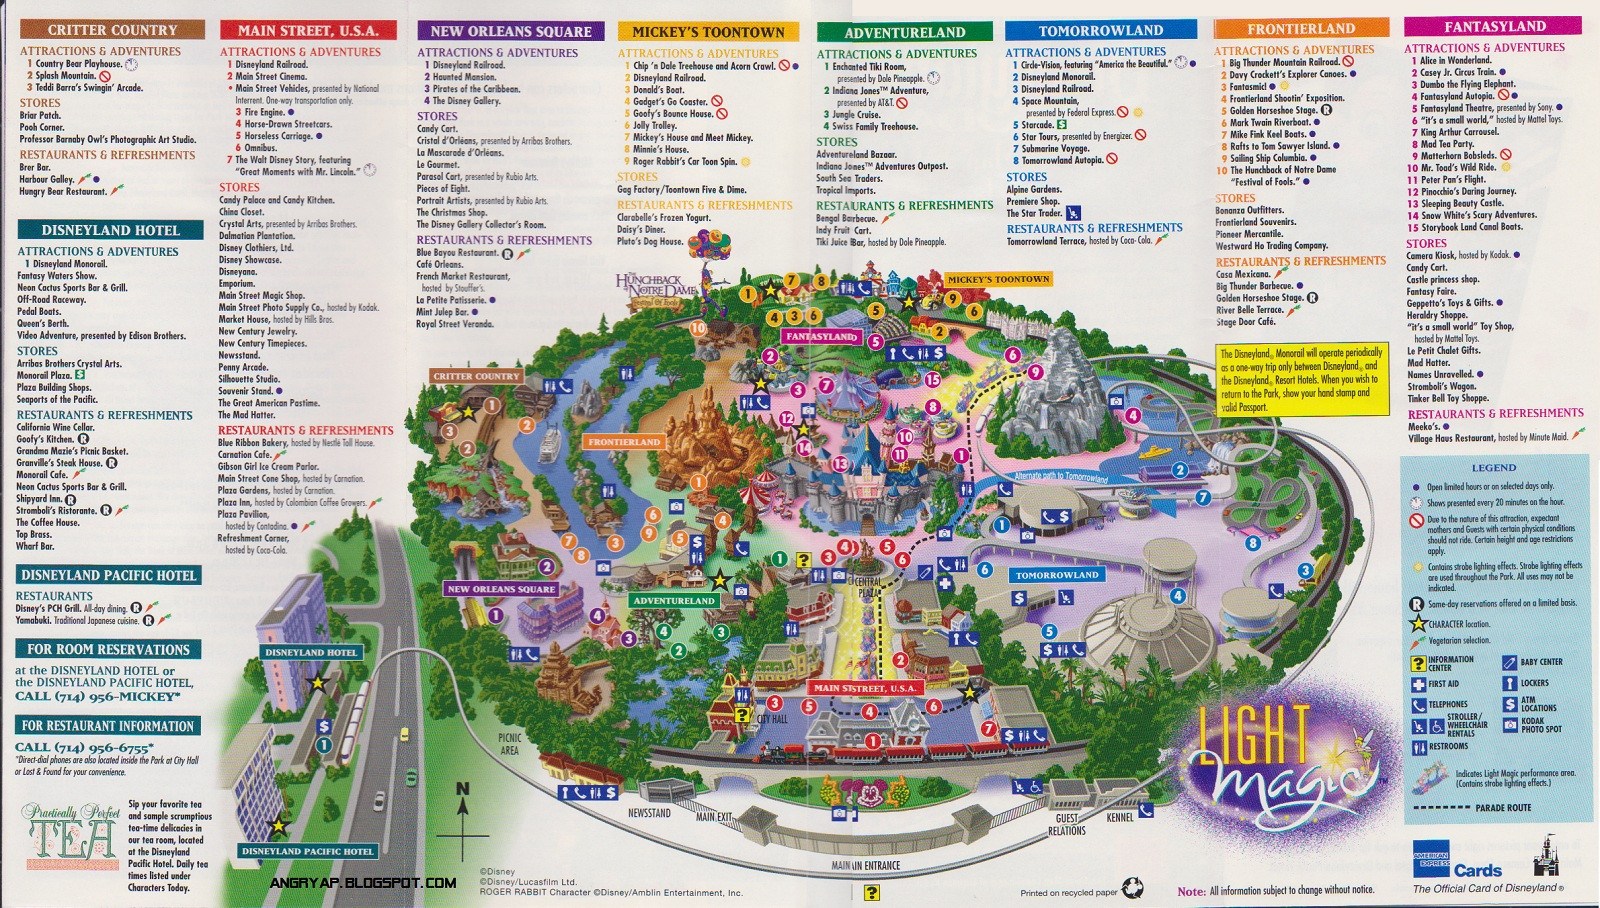 Printable Disneyland Map 2018 Lovely Orlando Florida Area Maps At Walt Disney World Printable